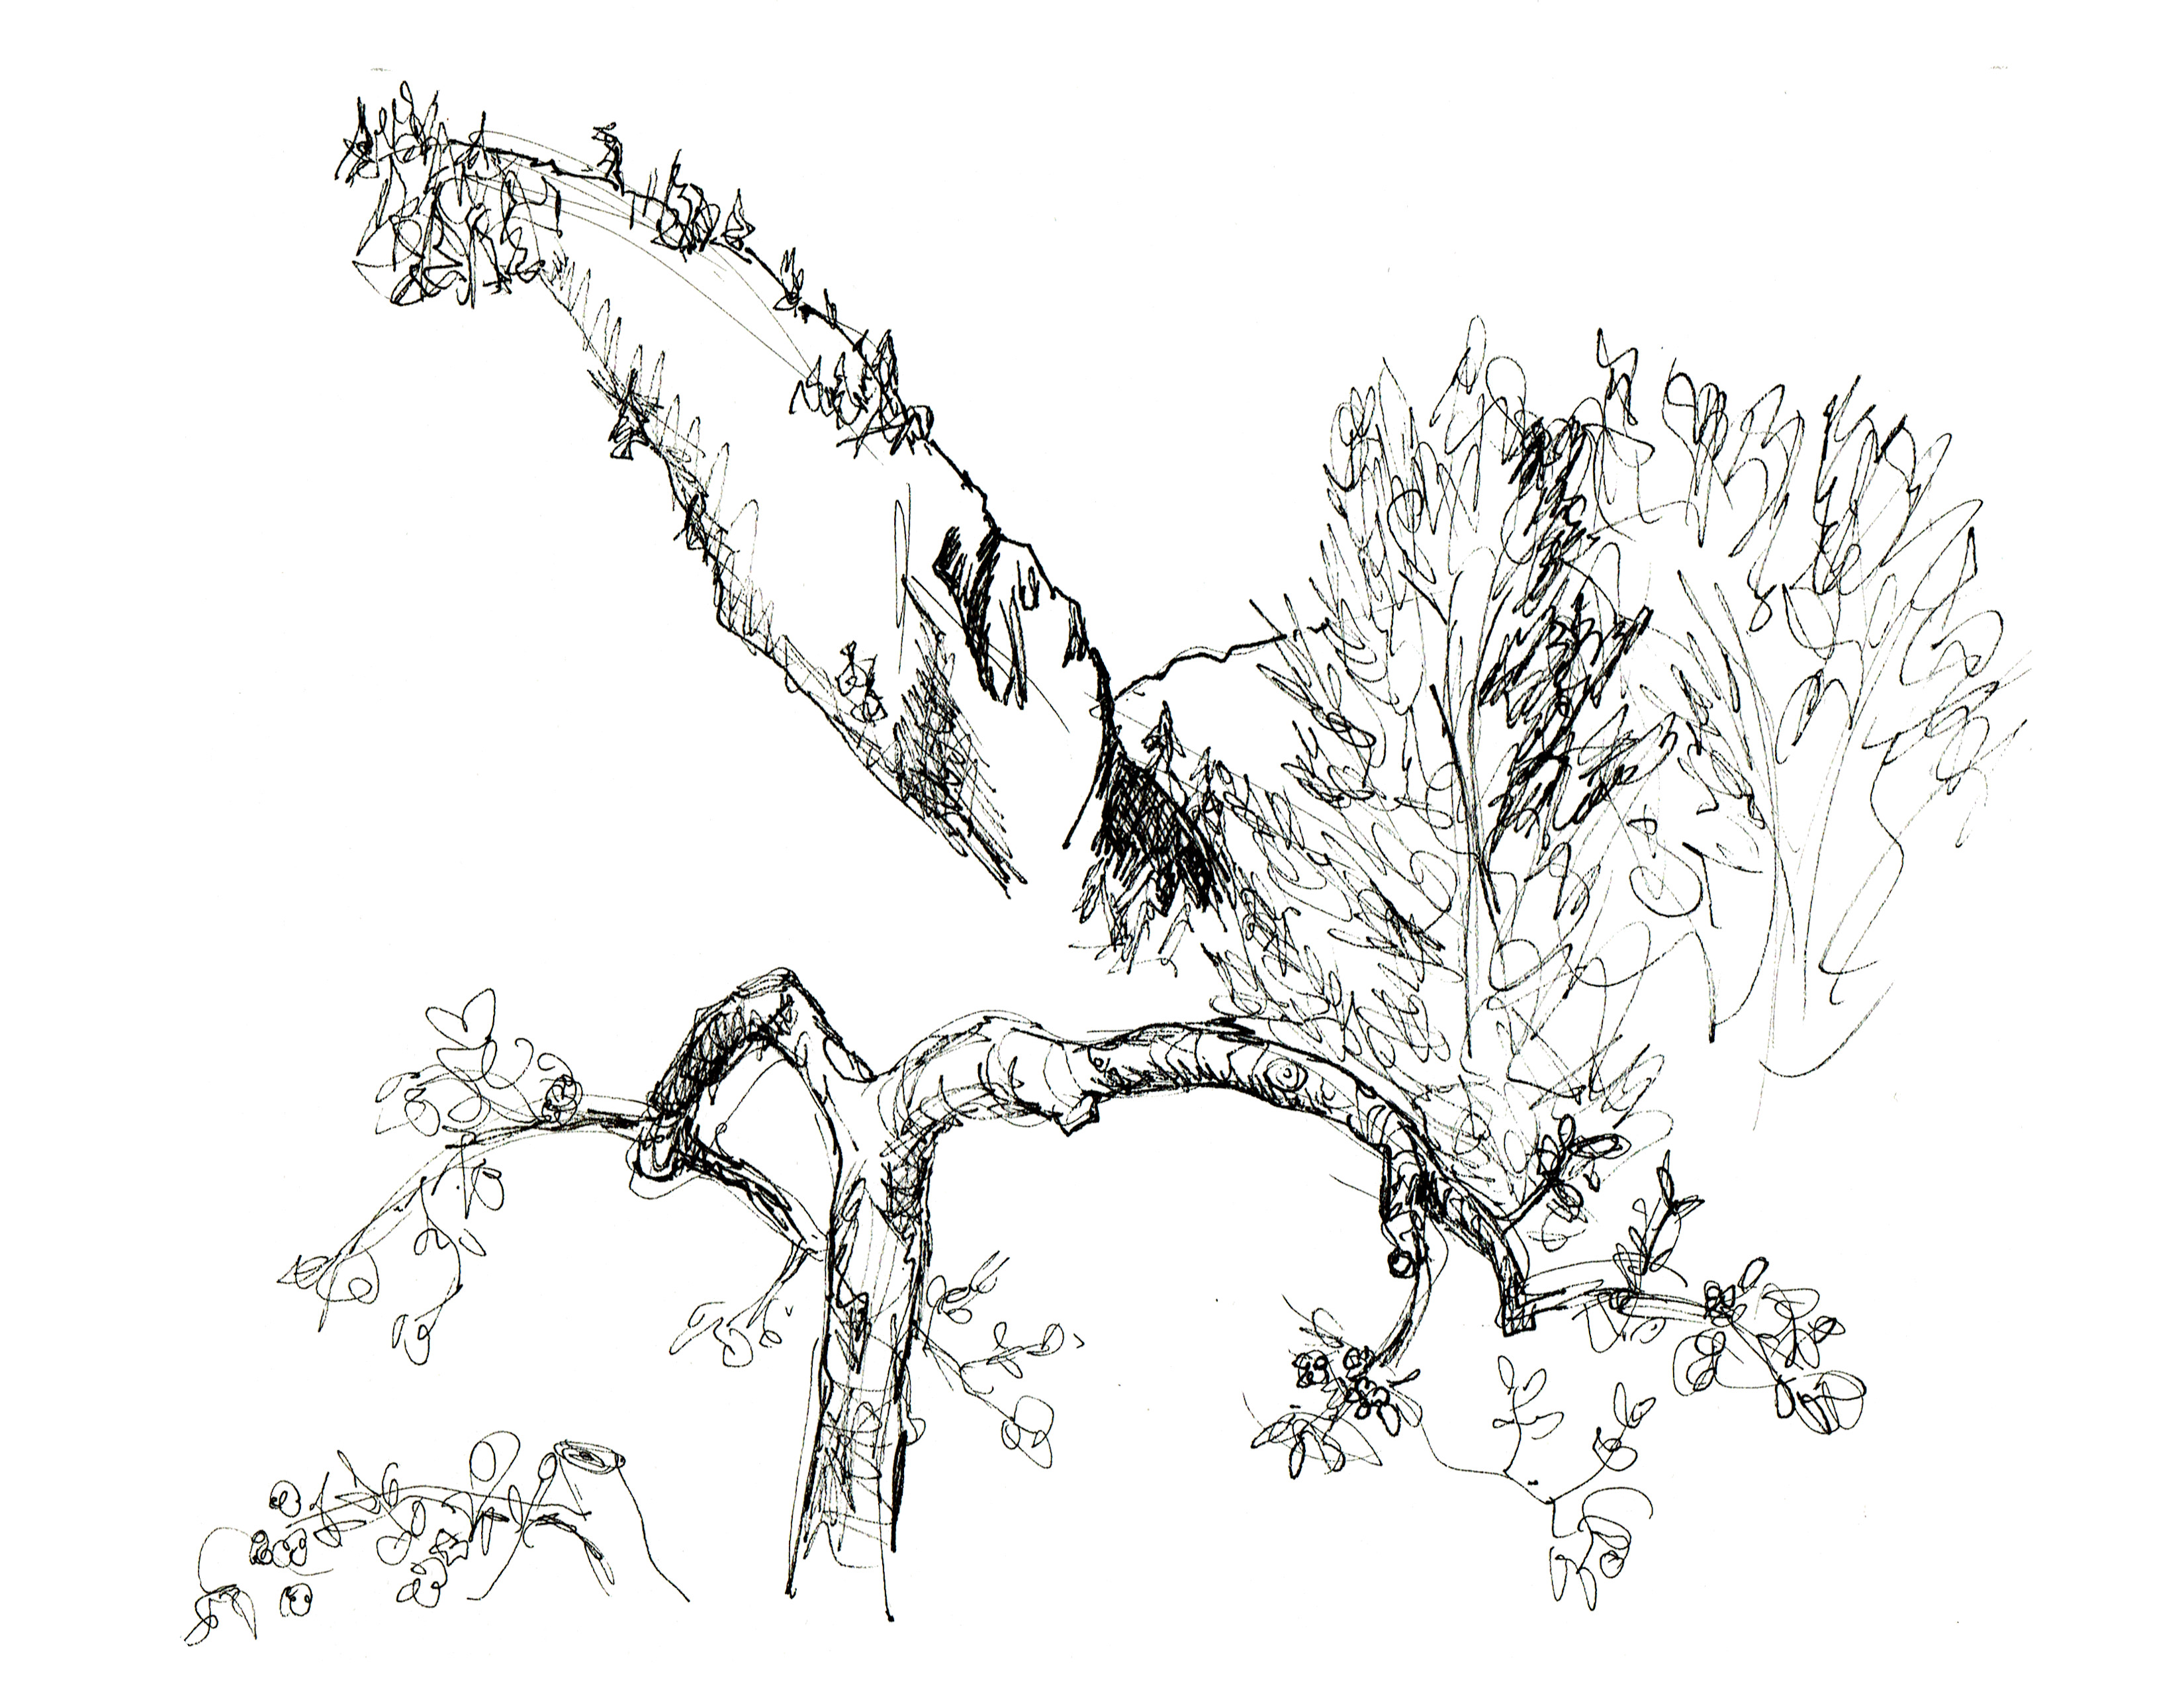 3300x2550 Castlegar View Pen Sketch Shows A Gnarled Apple Tree In